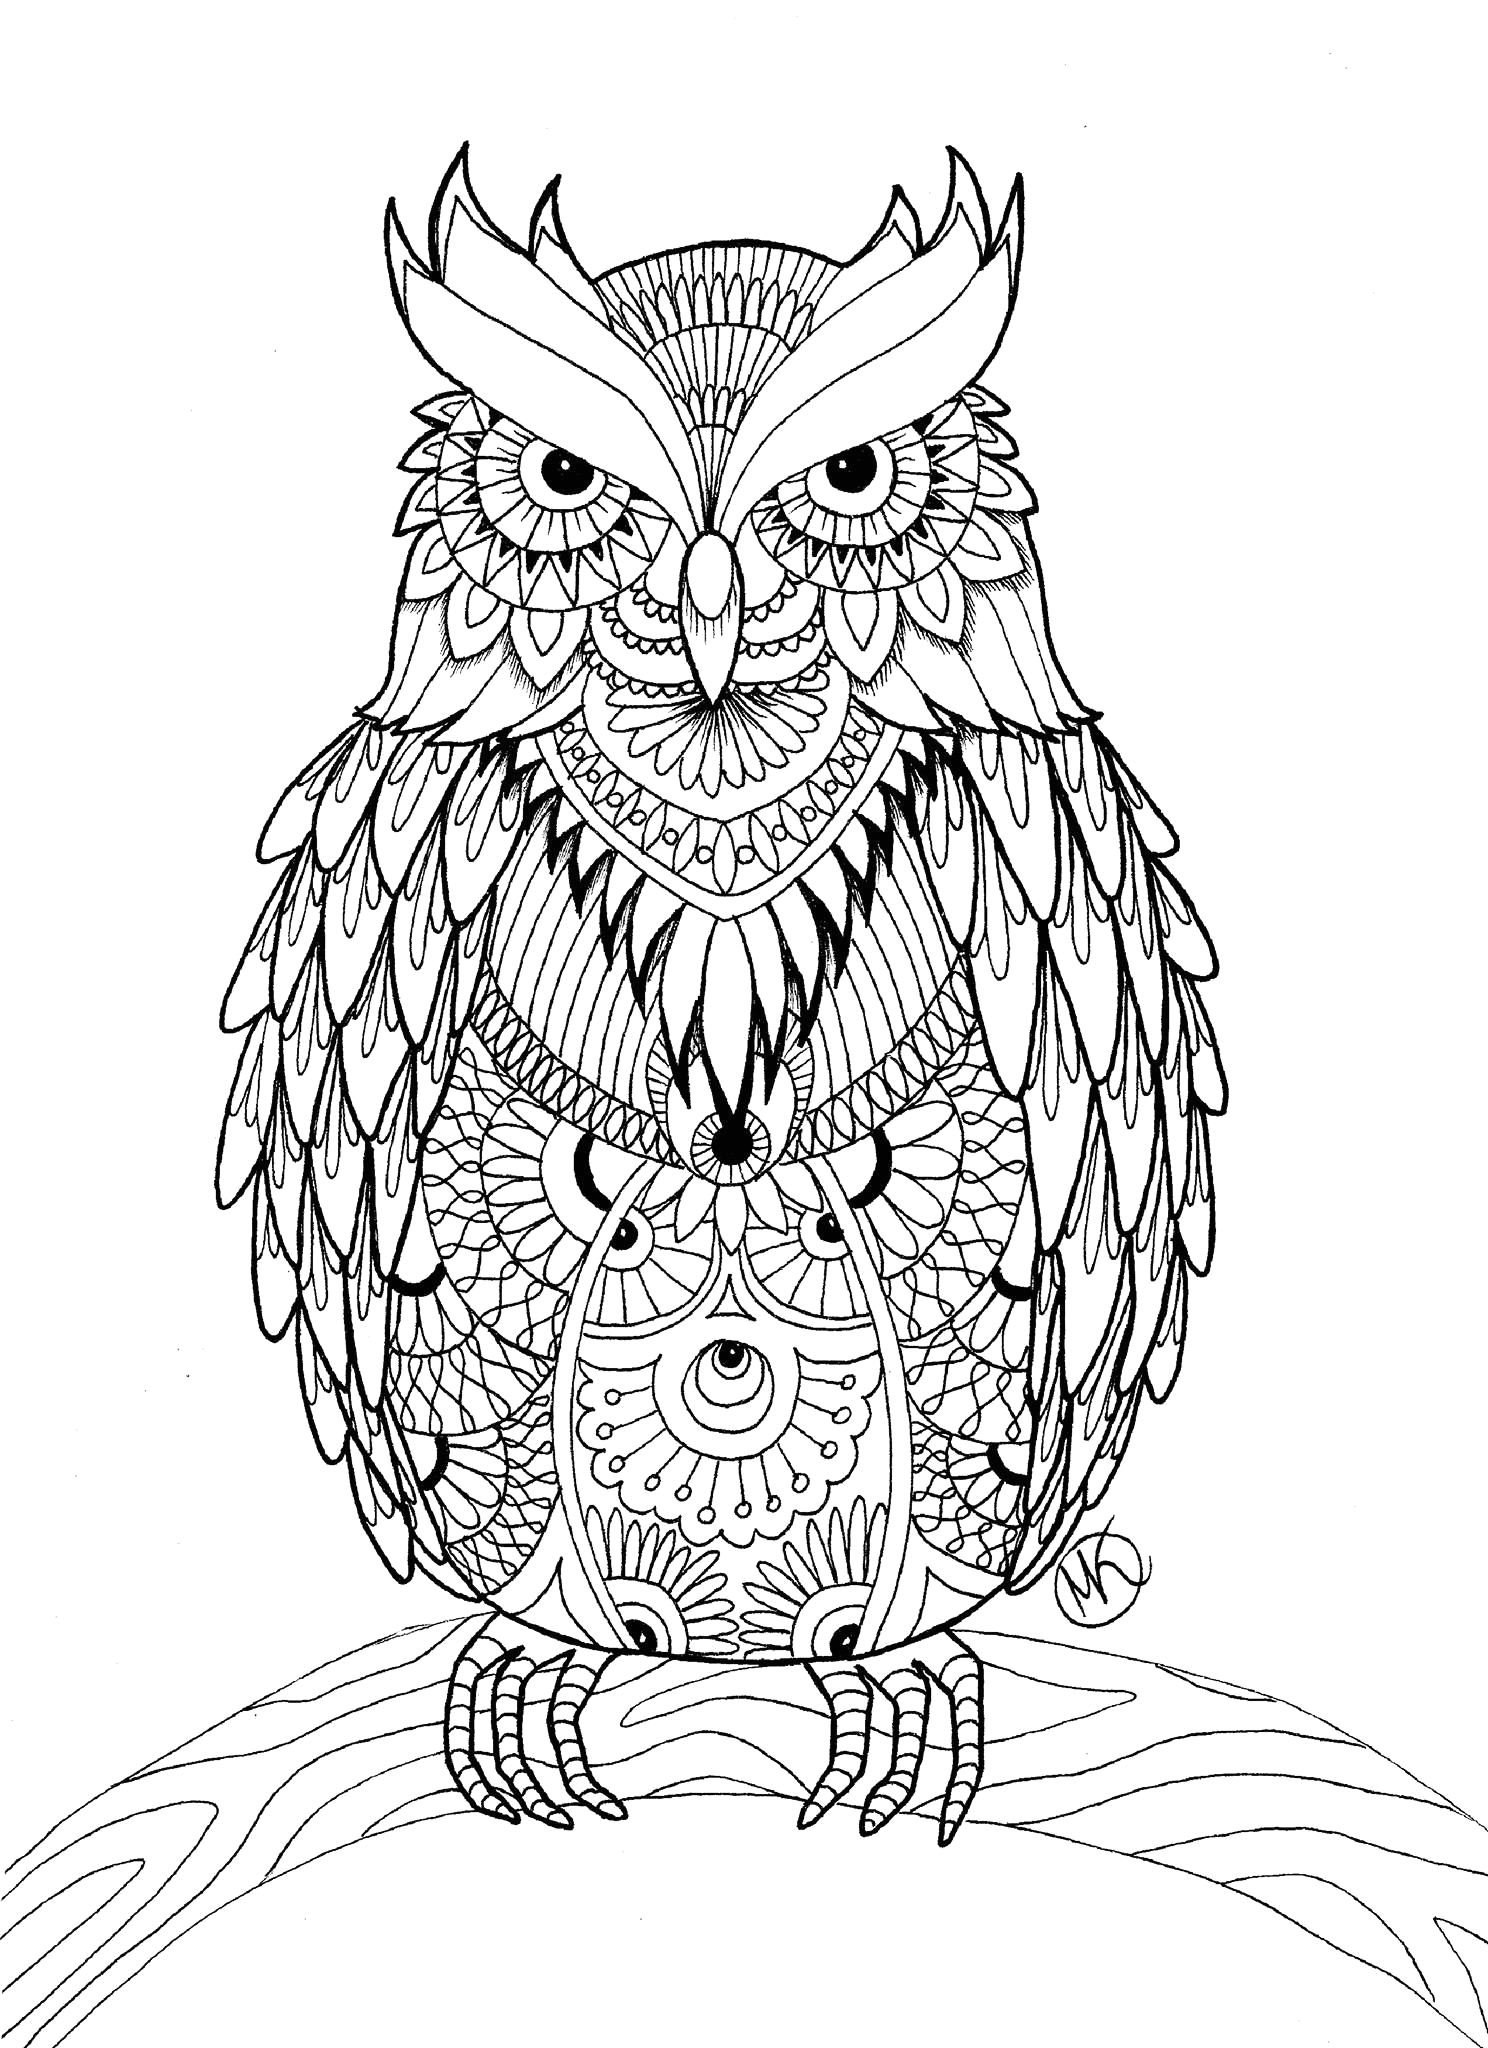 Free Printable Owl Coloring Pages for Adults Owl Coloring Pages for Adults Free Detailed Owl Coloring